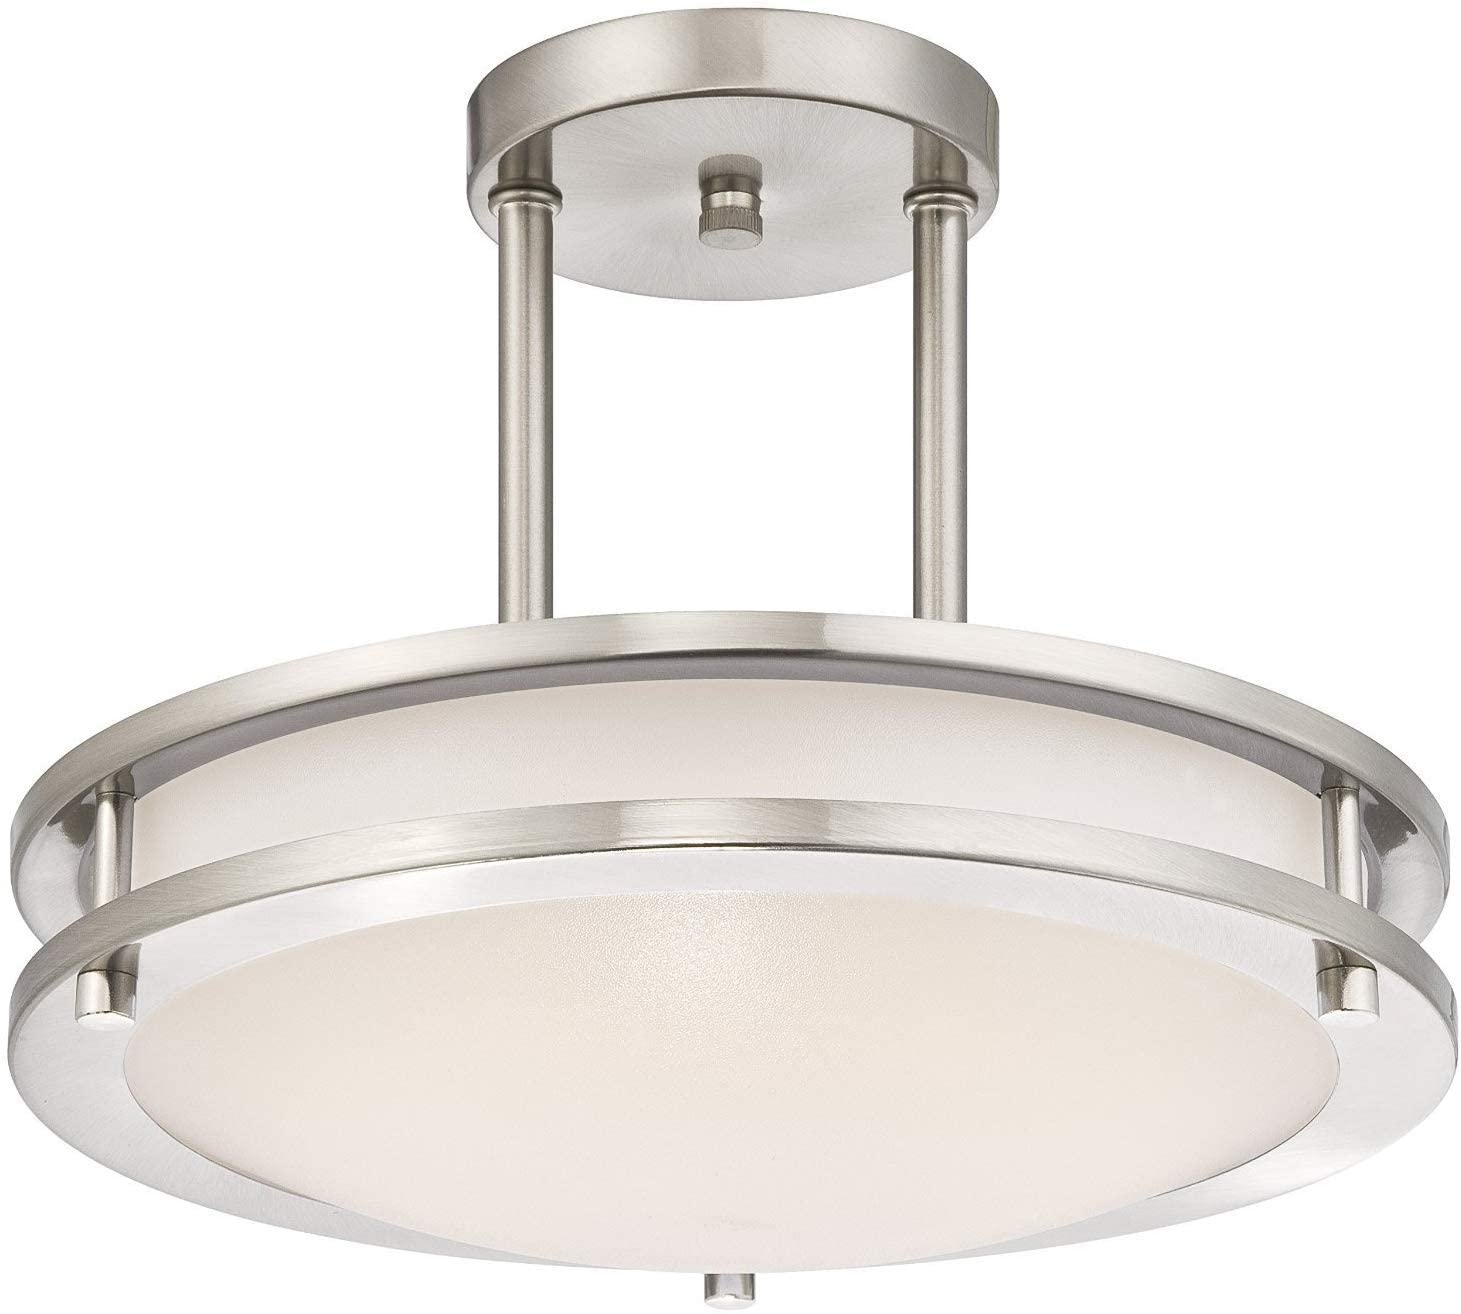 Light Blue LB72131 Semi Flush Ceiling Fixture